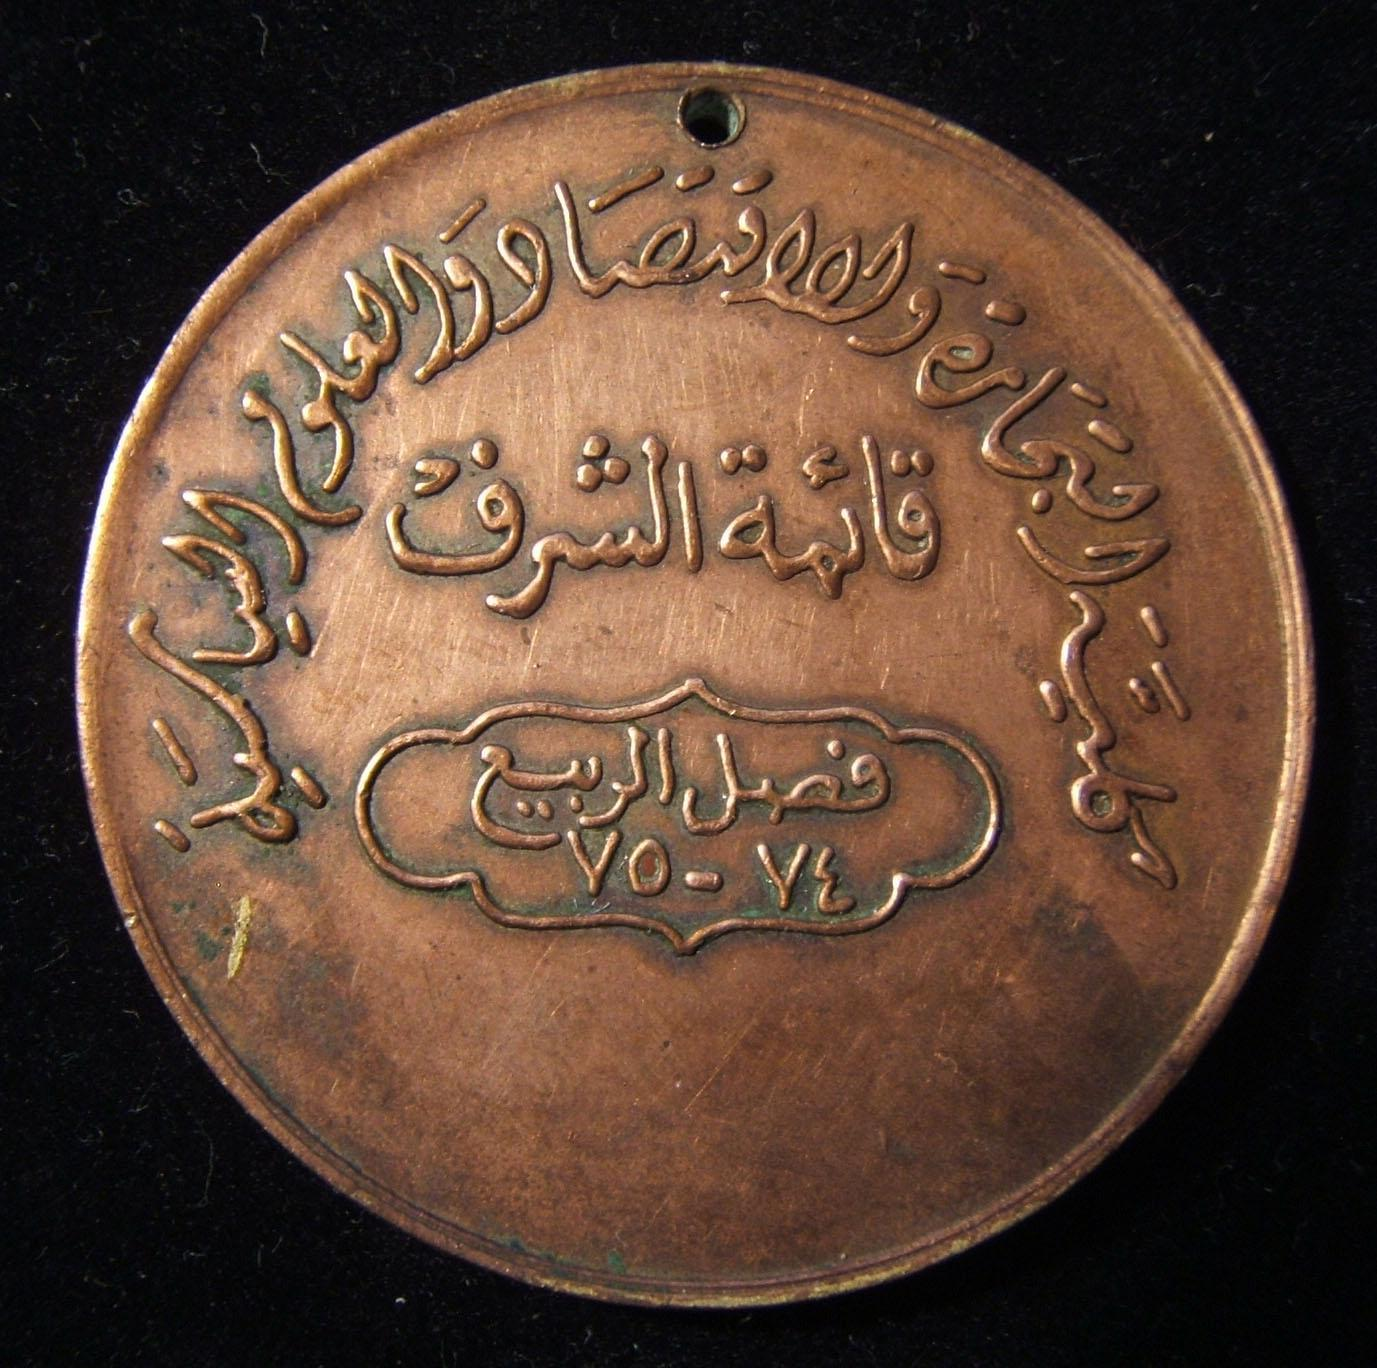 Jordanian University Faculty of Commerce & political science honor medal 1974-75